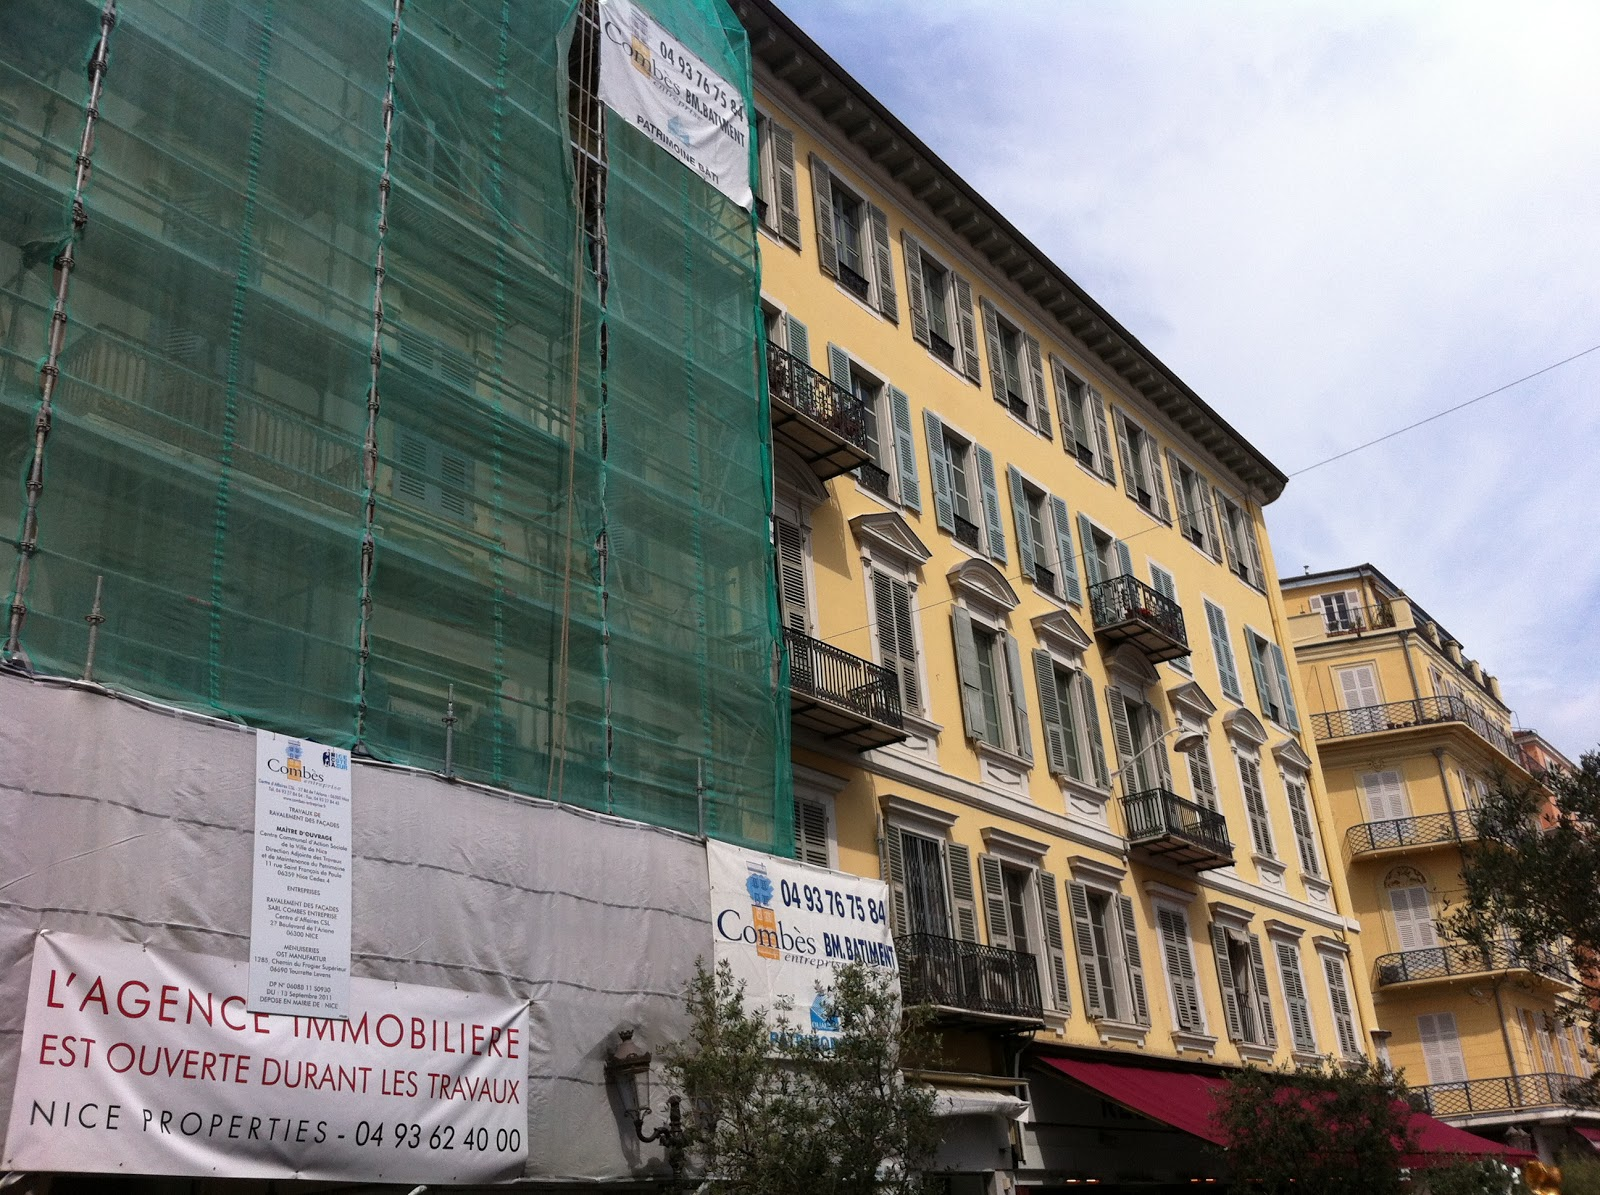 Agence immobili re nice les travaux de copropri t for Agence immobiliere 5 promenade nice